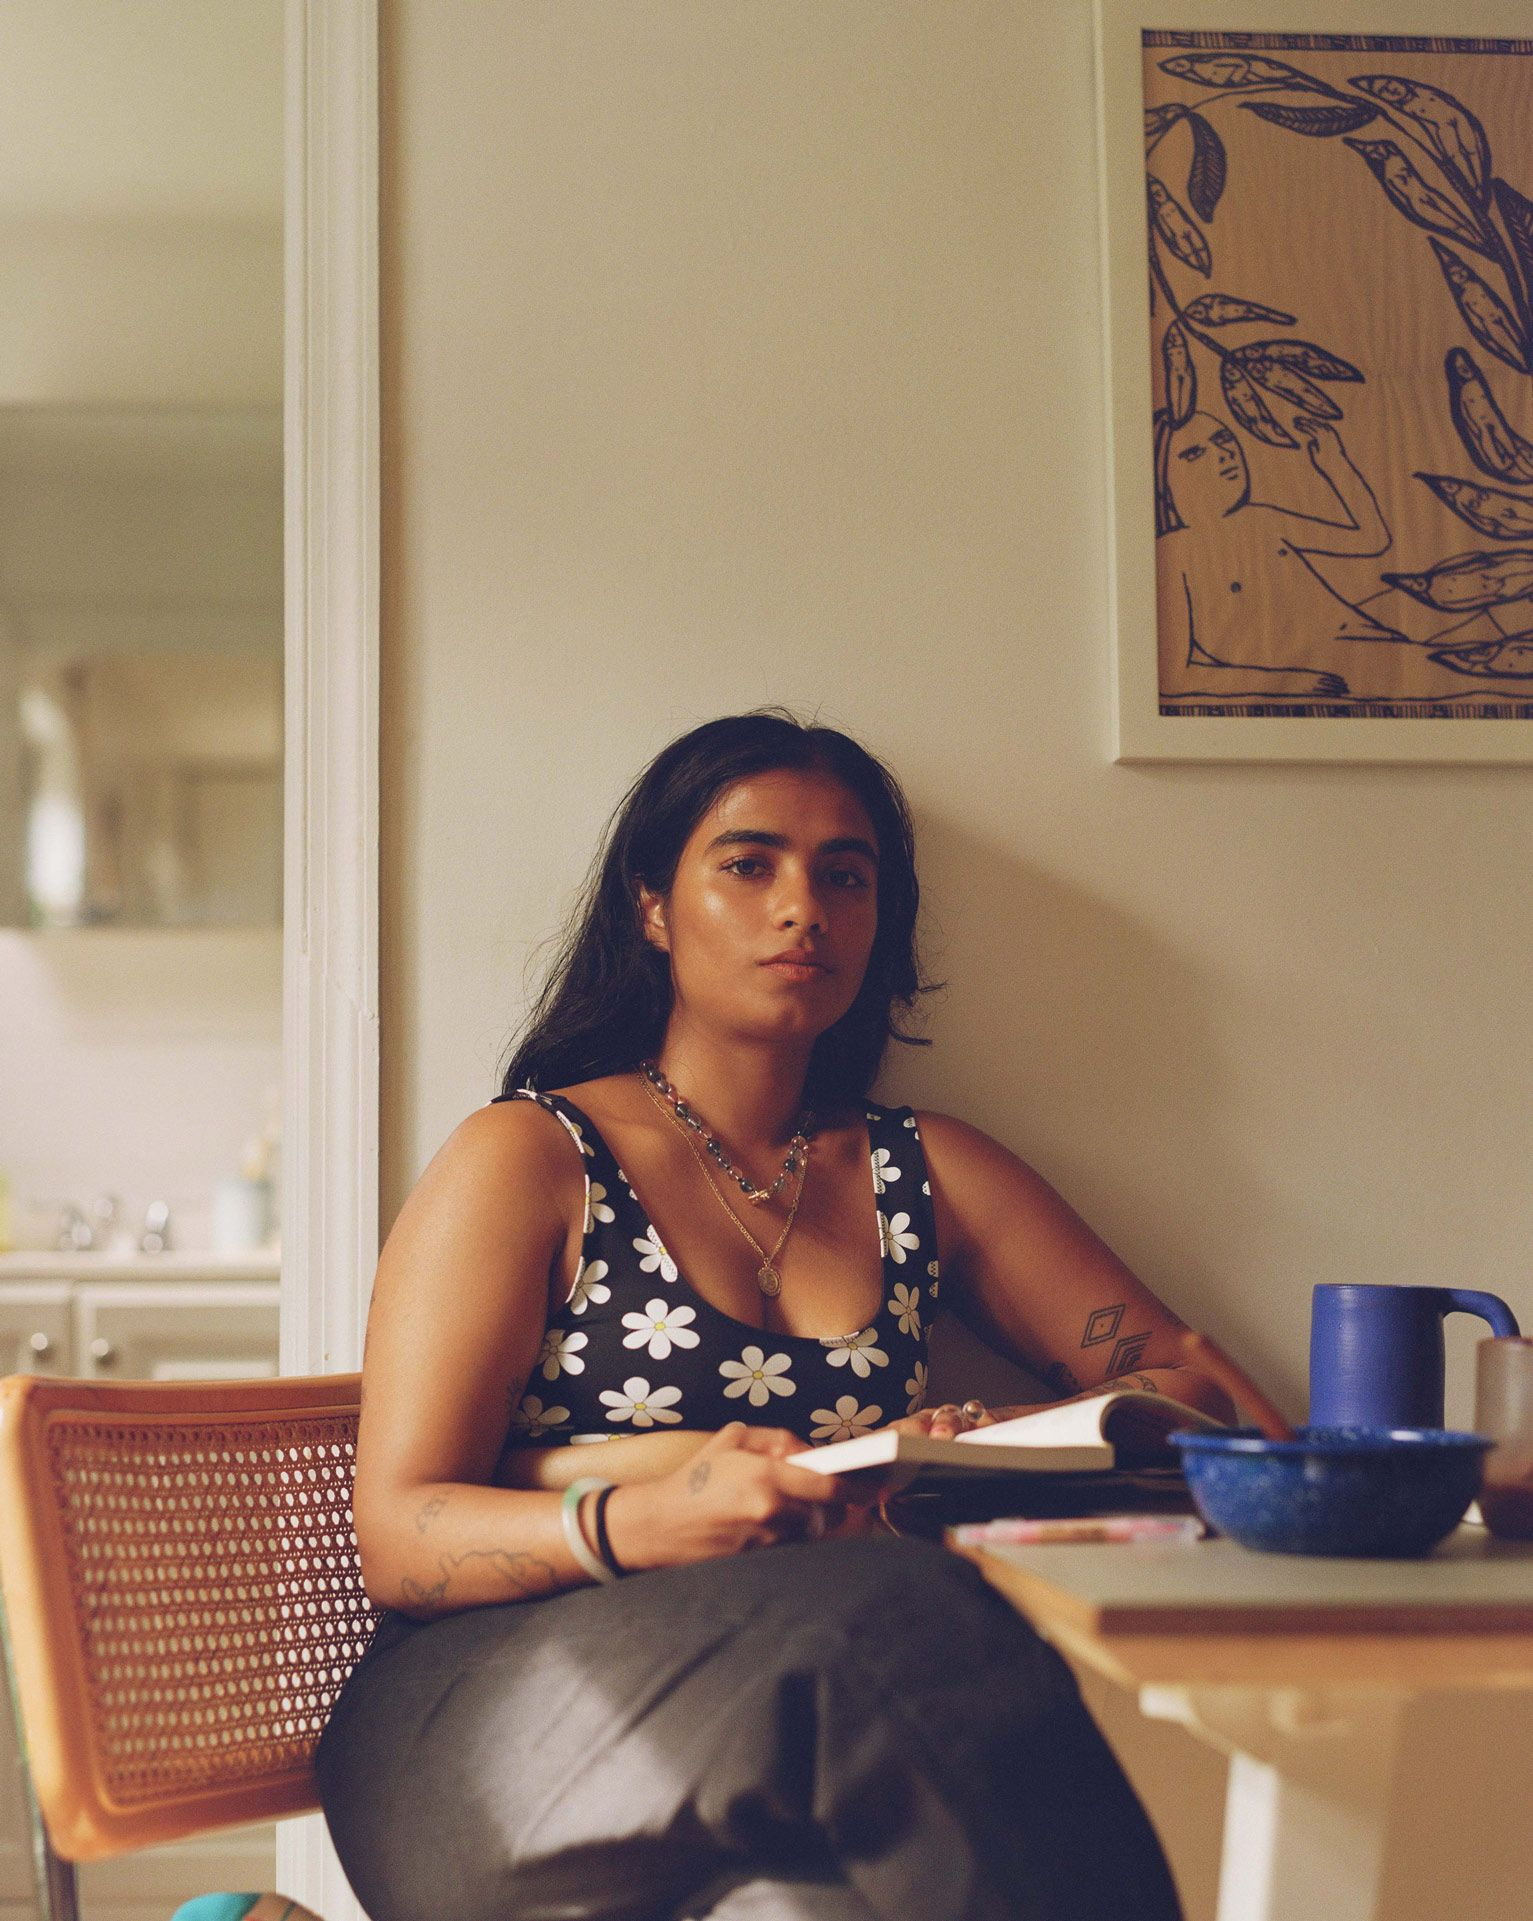 writer Fariha Roisin sitting at her kitchen table looking at camera and holding a book wearing black jeans and flower-patterned sports bra photographed by Oumayma B. Tanfous for Levi's